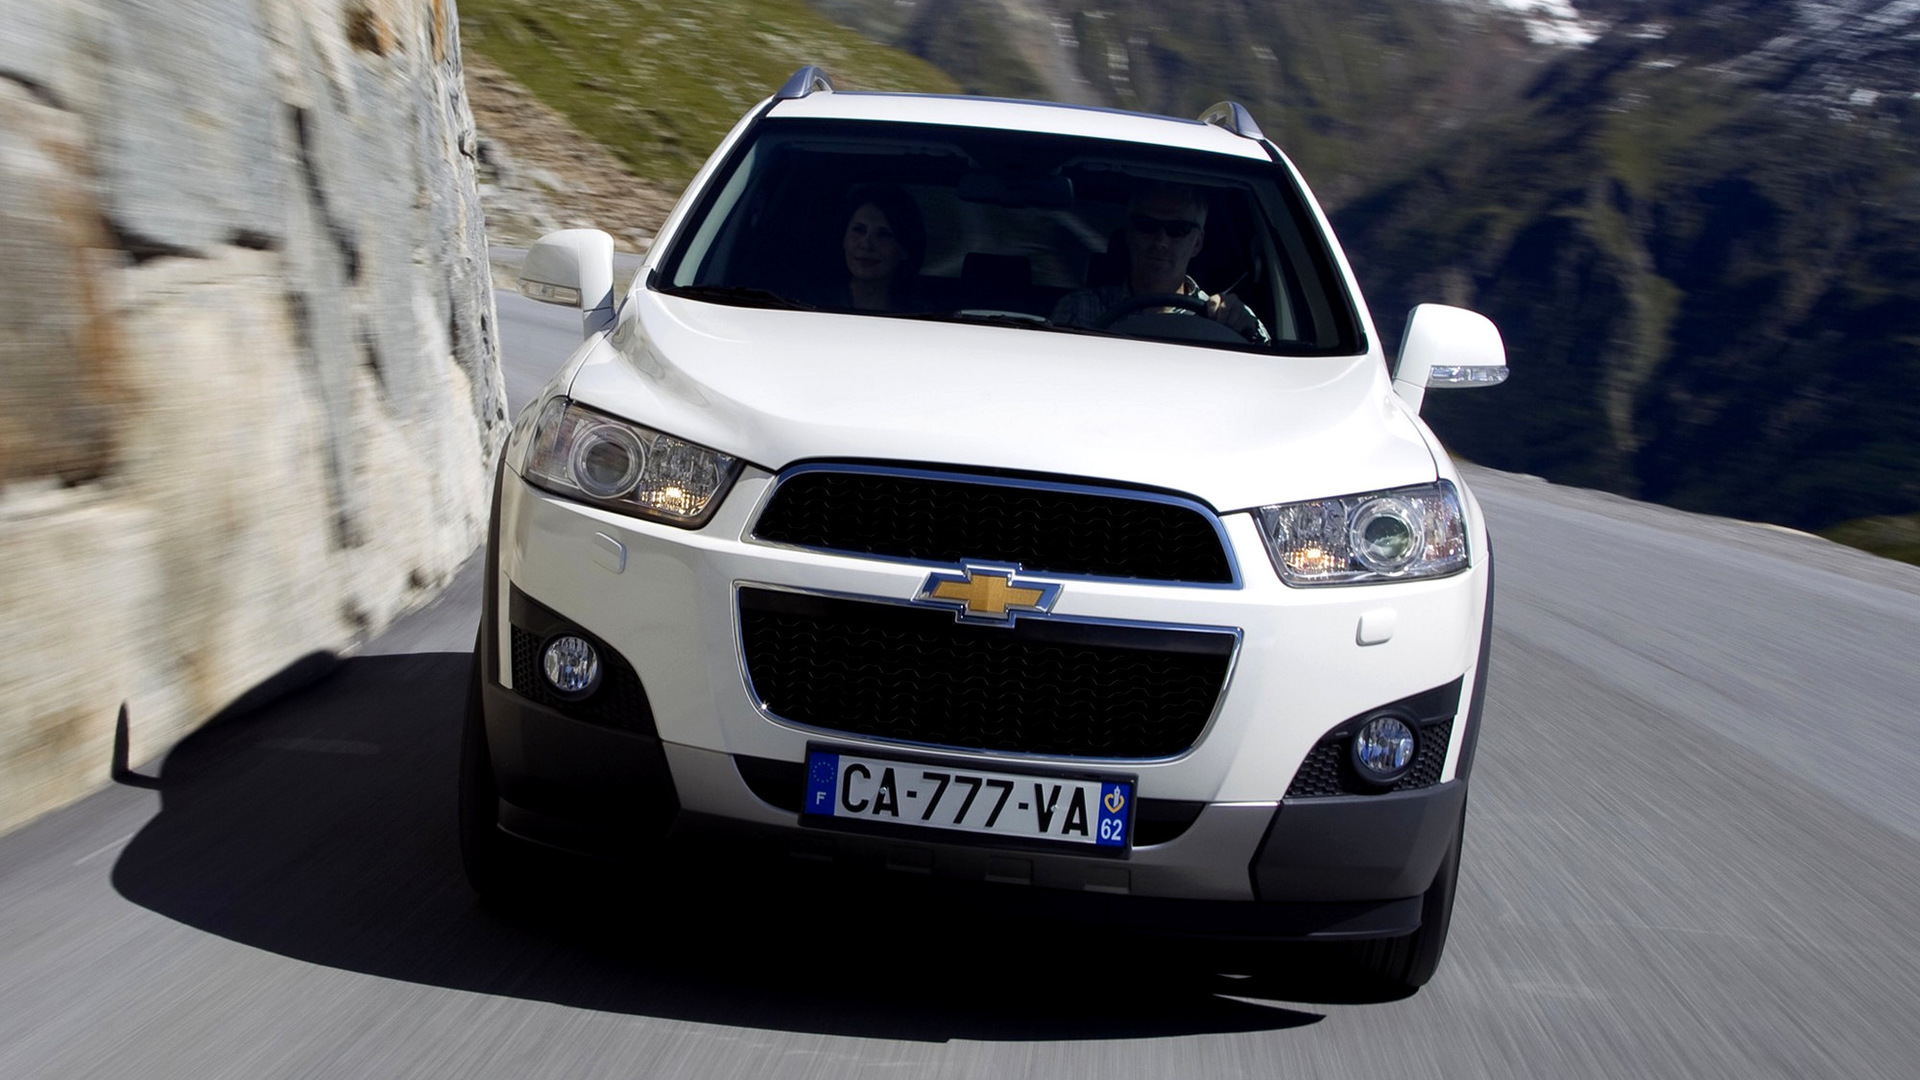 Chevrolet Captiva (2011) Wallpapers and HD Images - Car Pixel